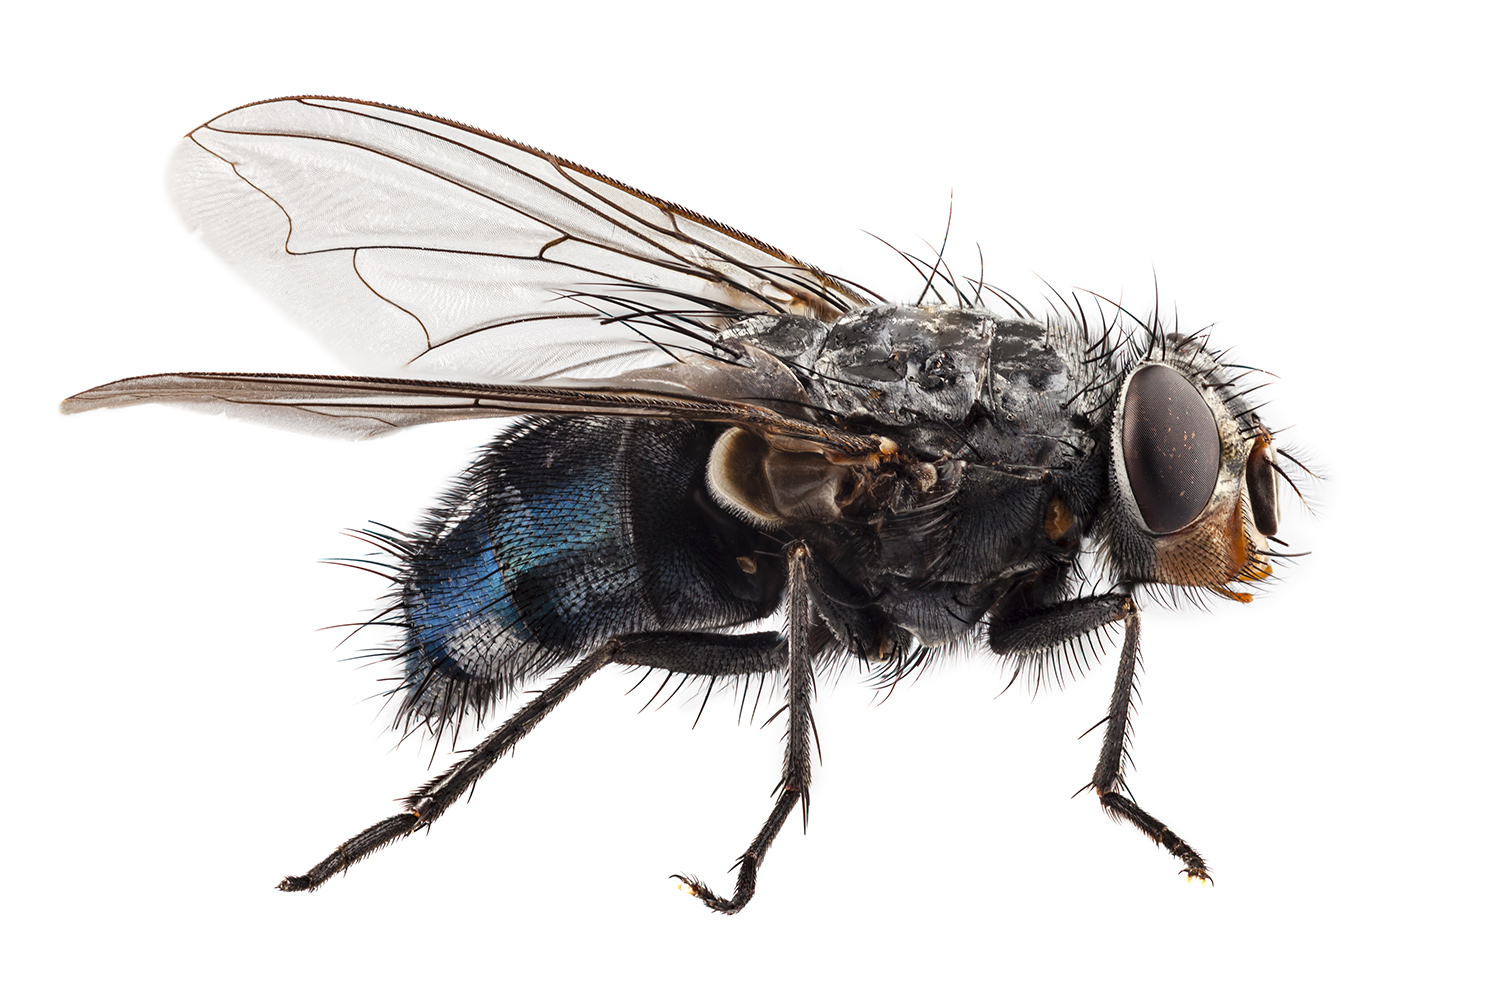 A fly is an example of an insect that relies on a salt and water balance.